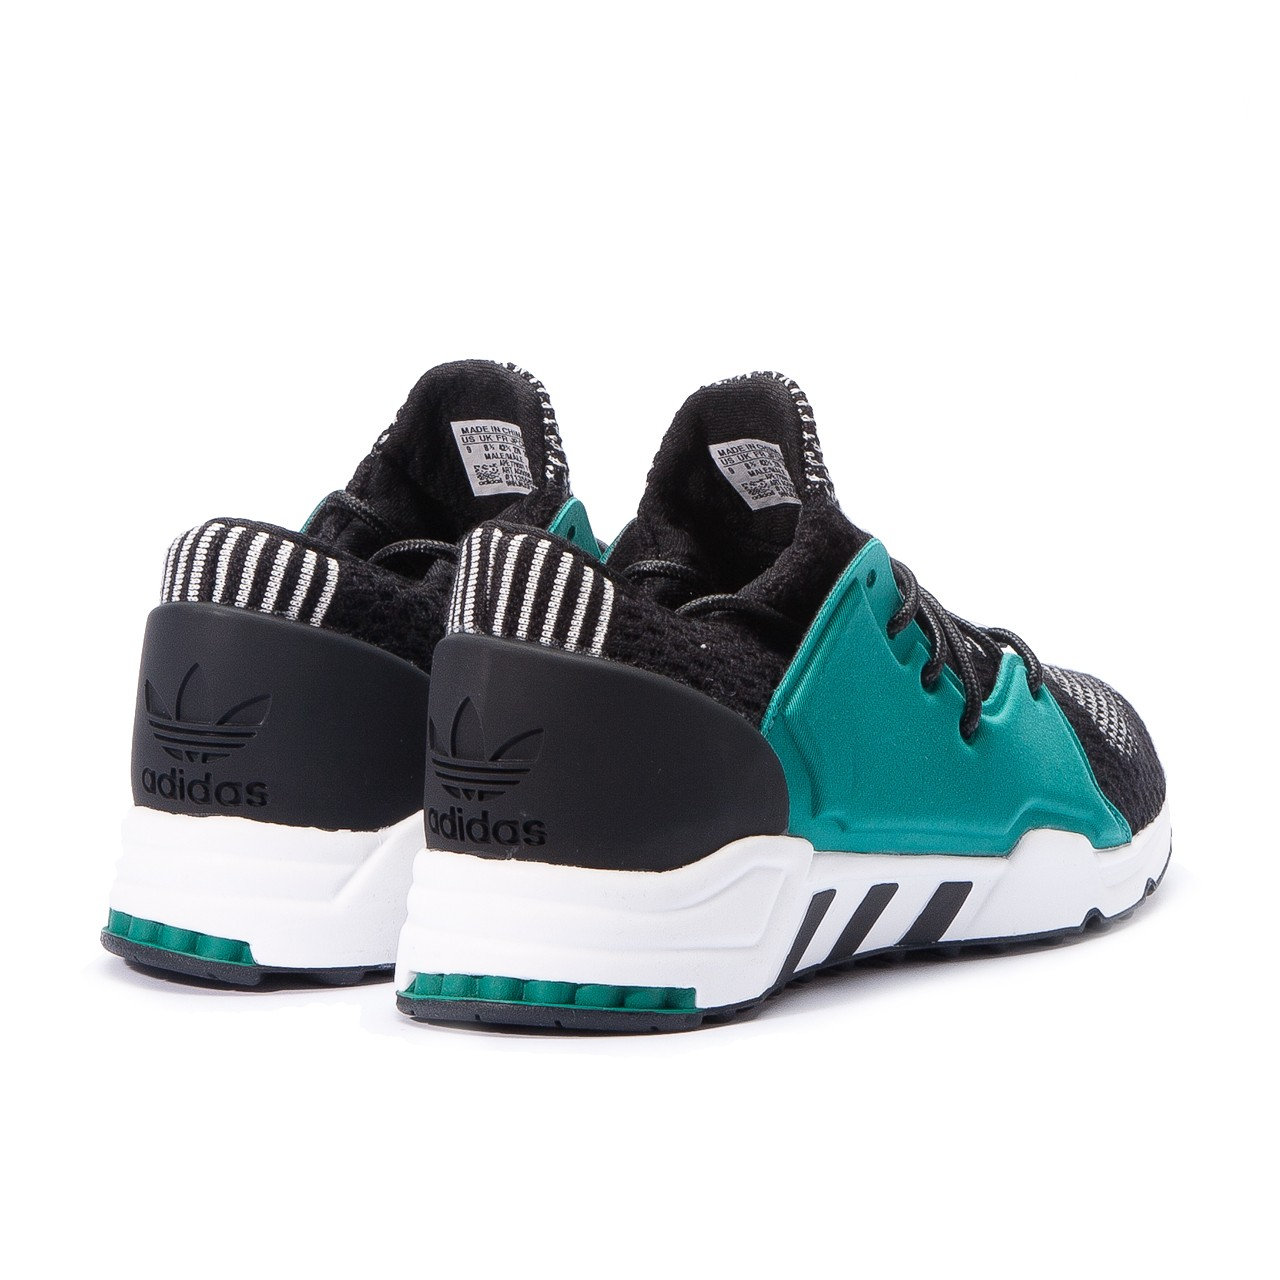 on sale dc0f7 92899 adidas EQT F15 Series